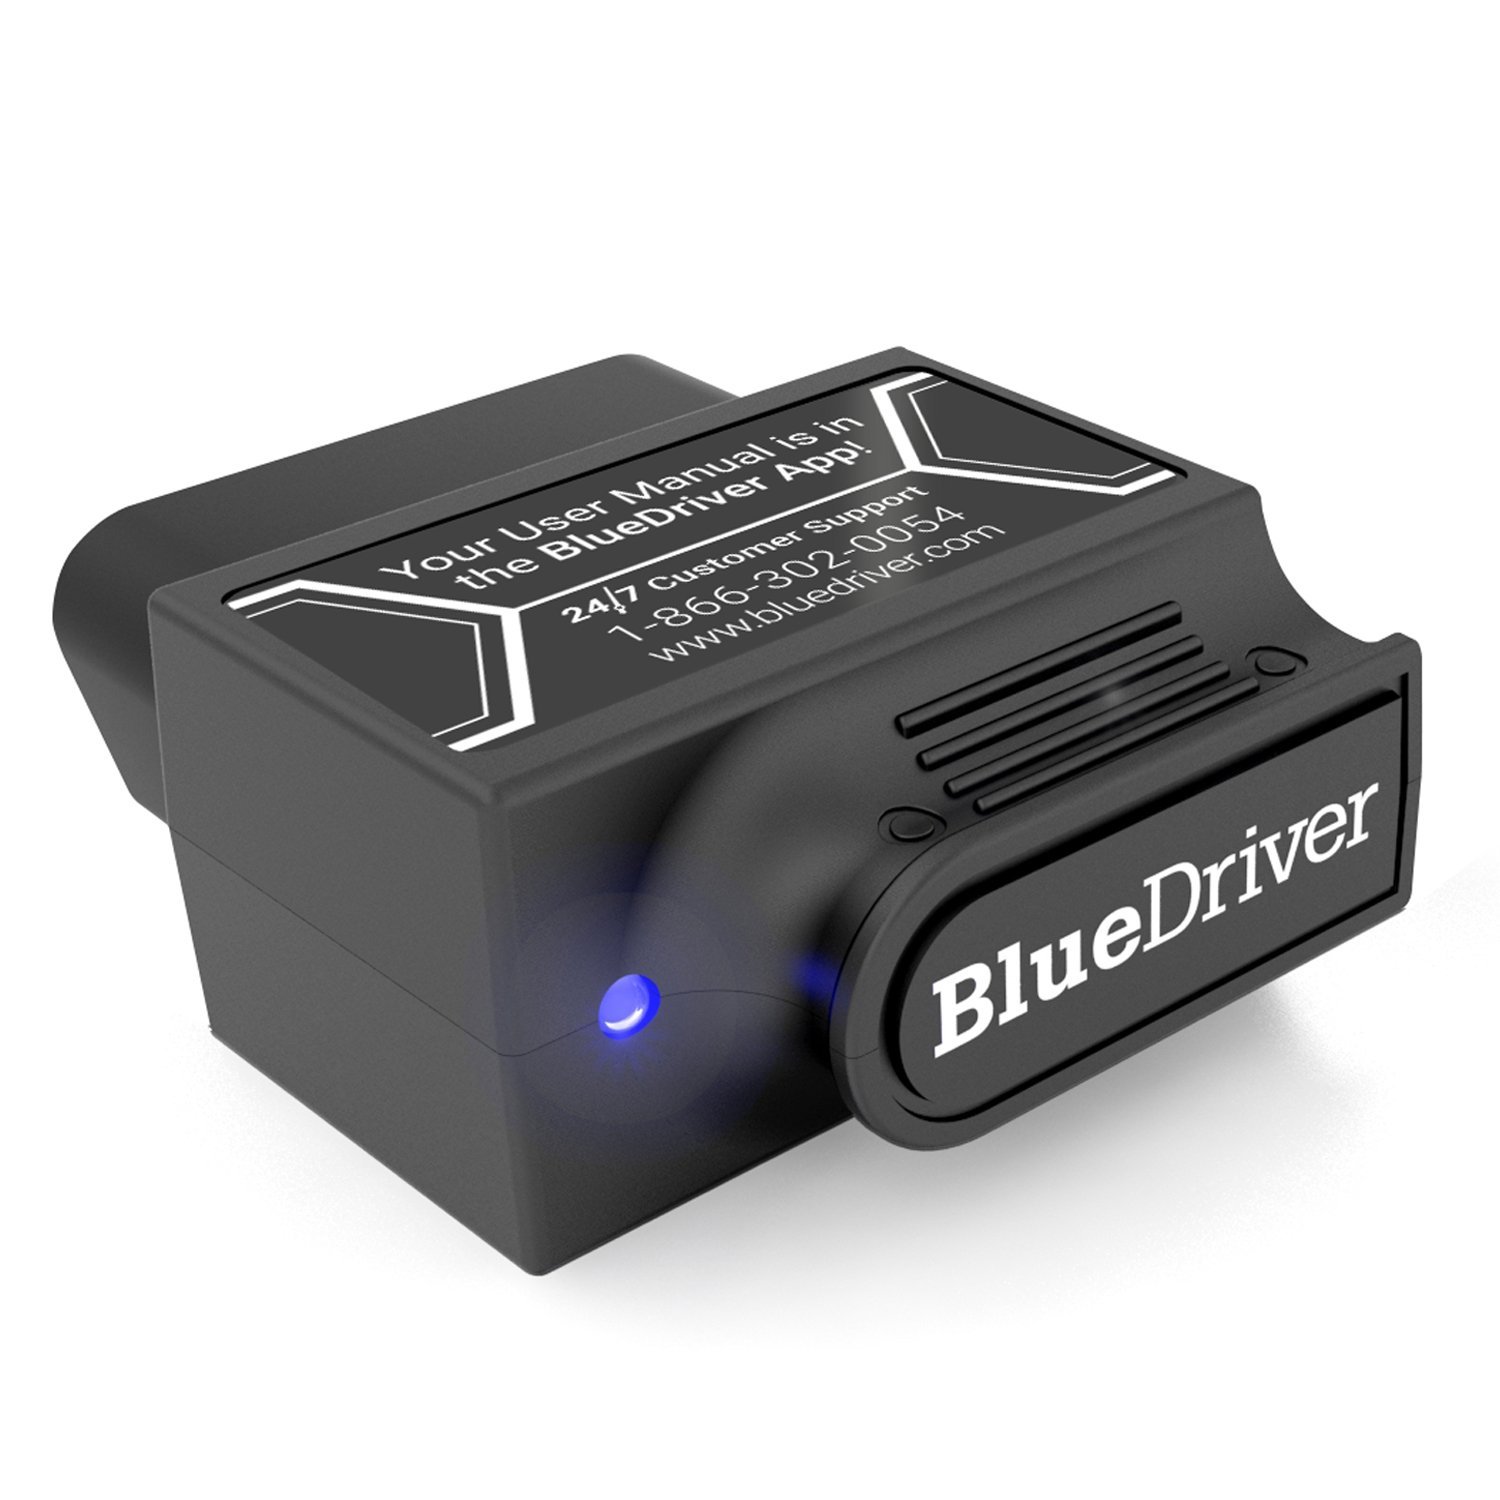 14 Best OBD2 Scanners: Reviews and Detailed Guide for 2018